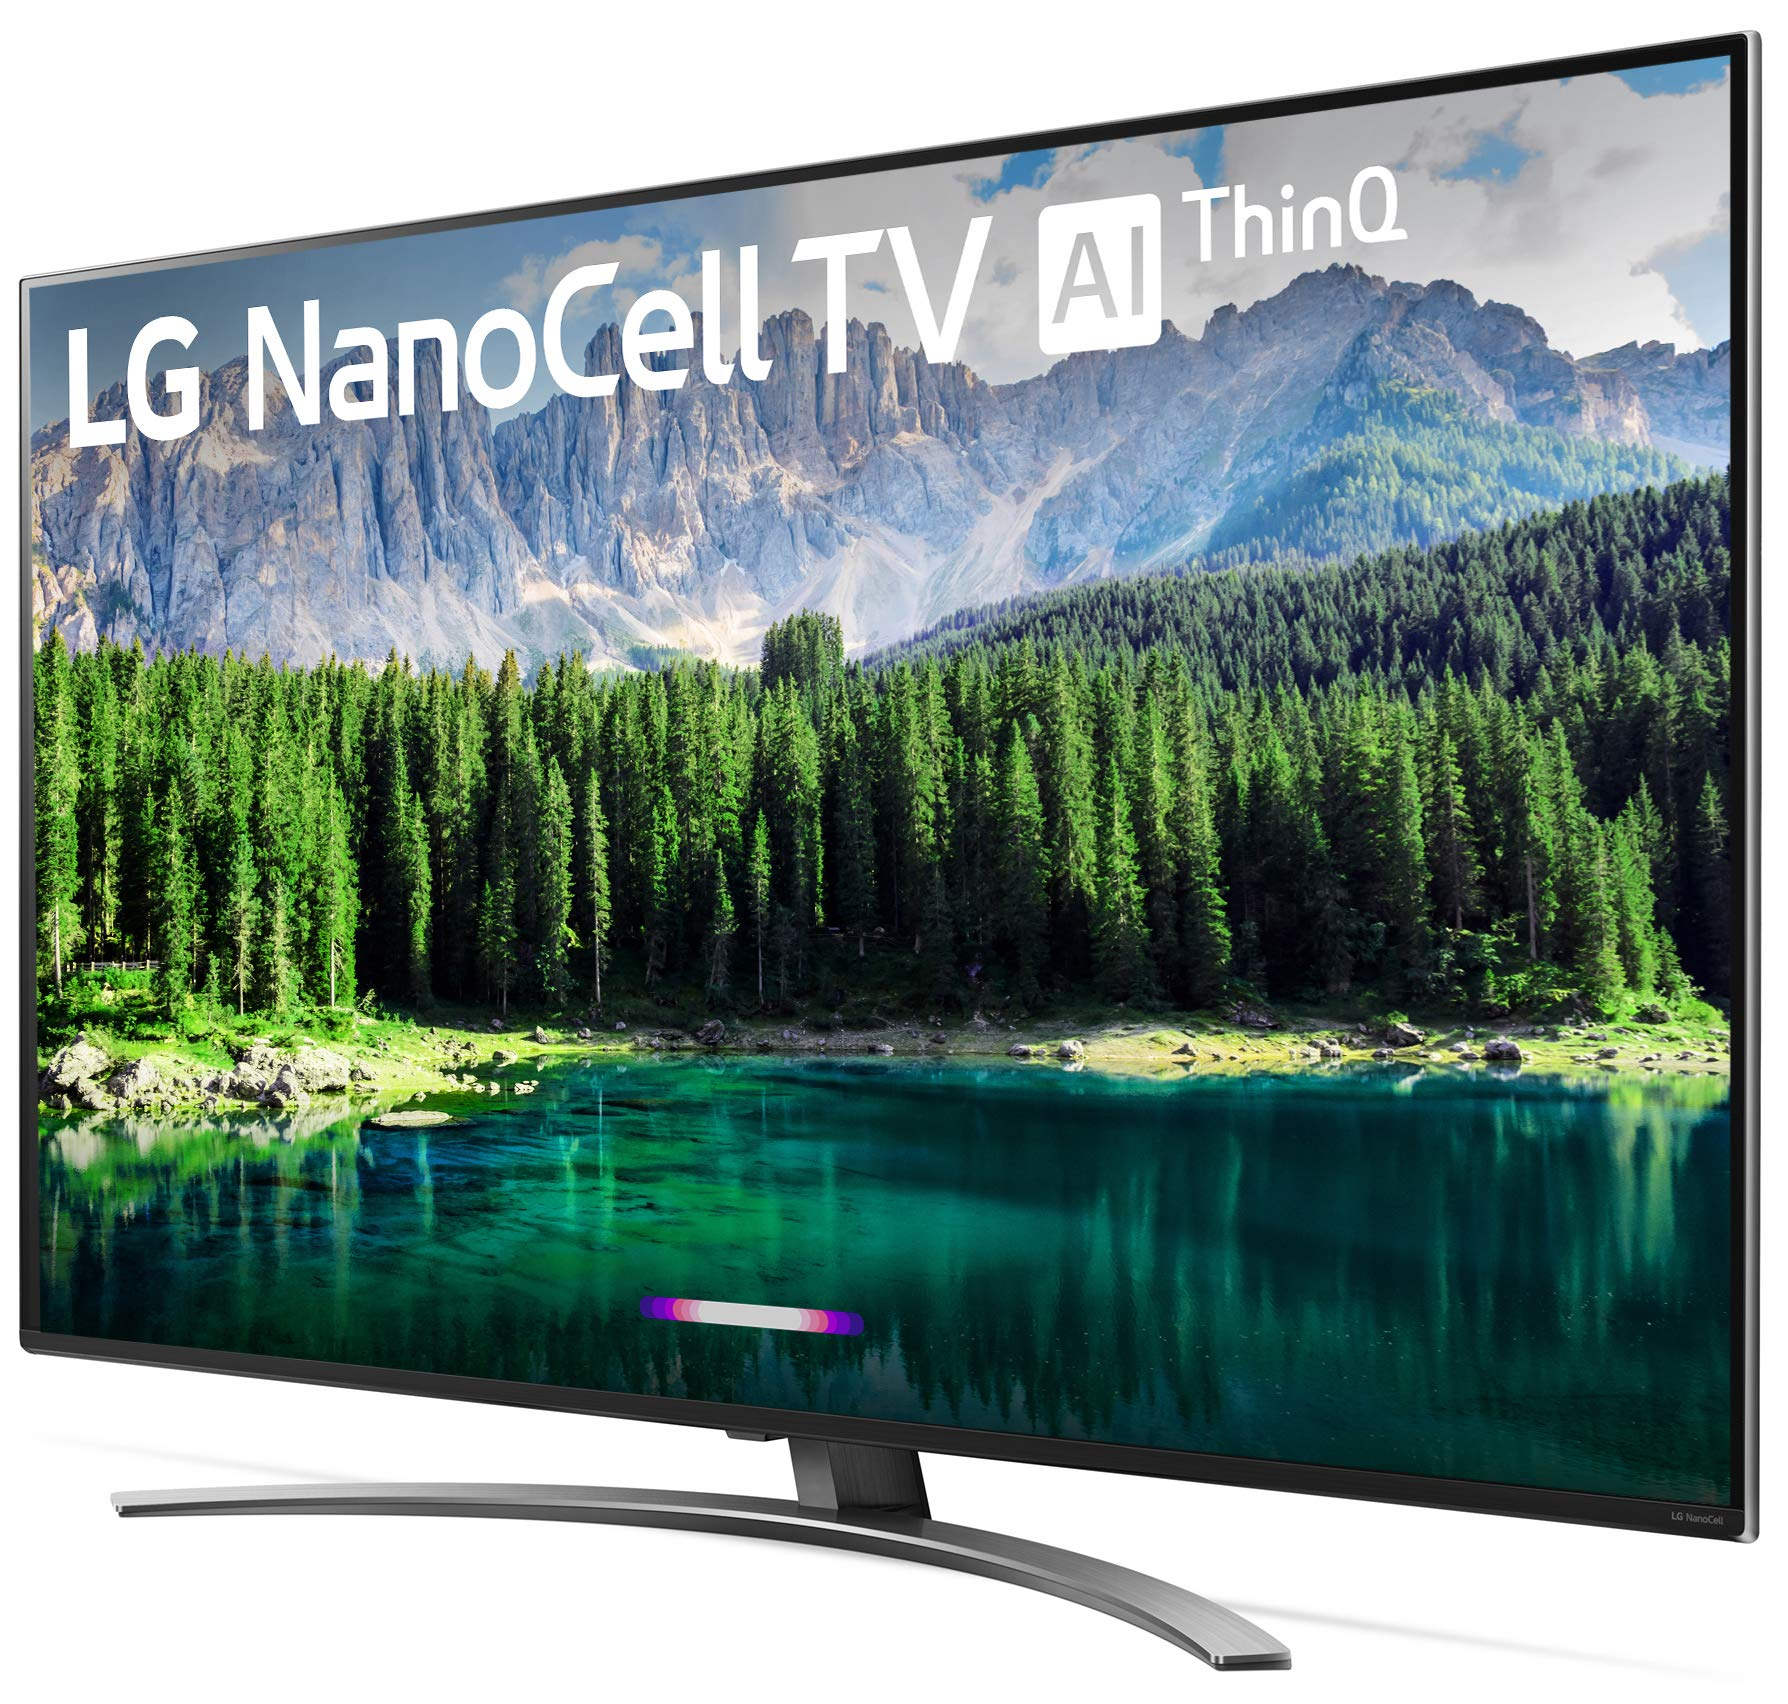 LG 55SM8600PUA Nano 8 Series 55'' 4K Ultra HD Smart LED NanoCell TV (2019), Black by LG (Image #8)